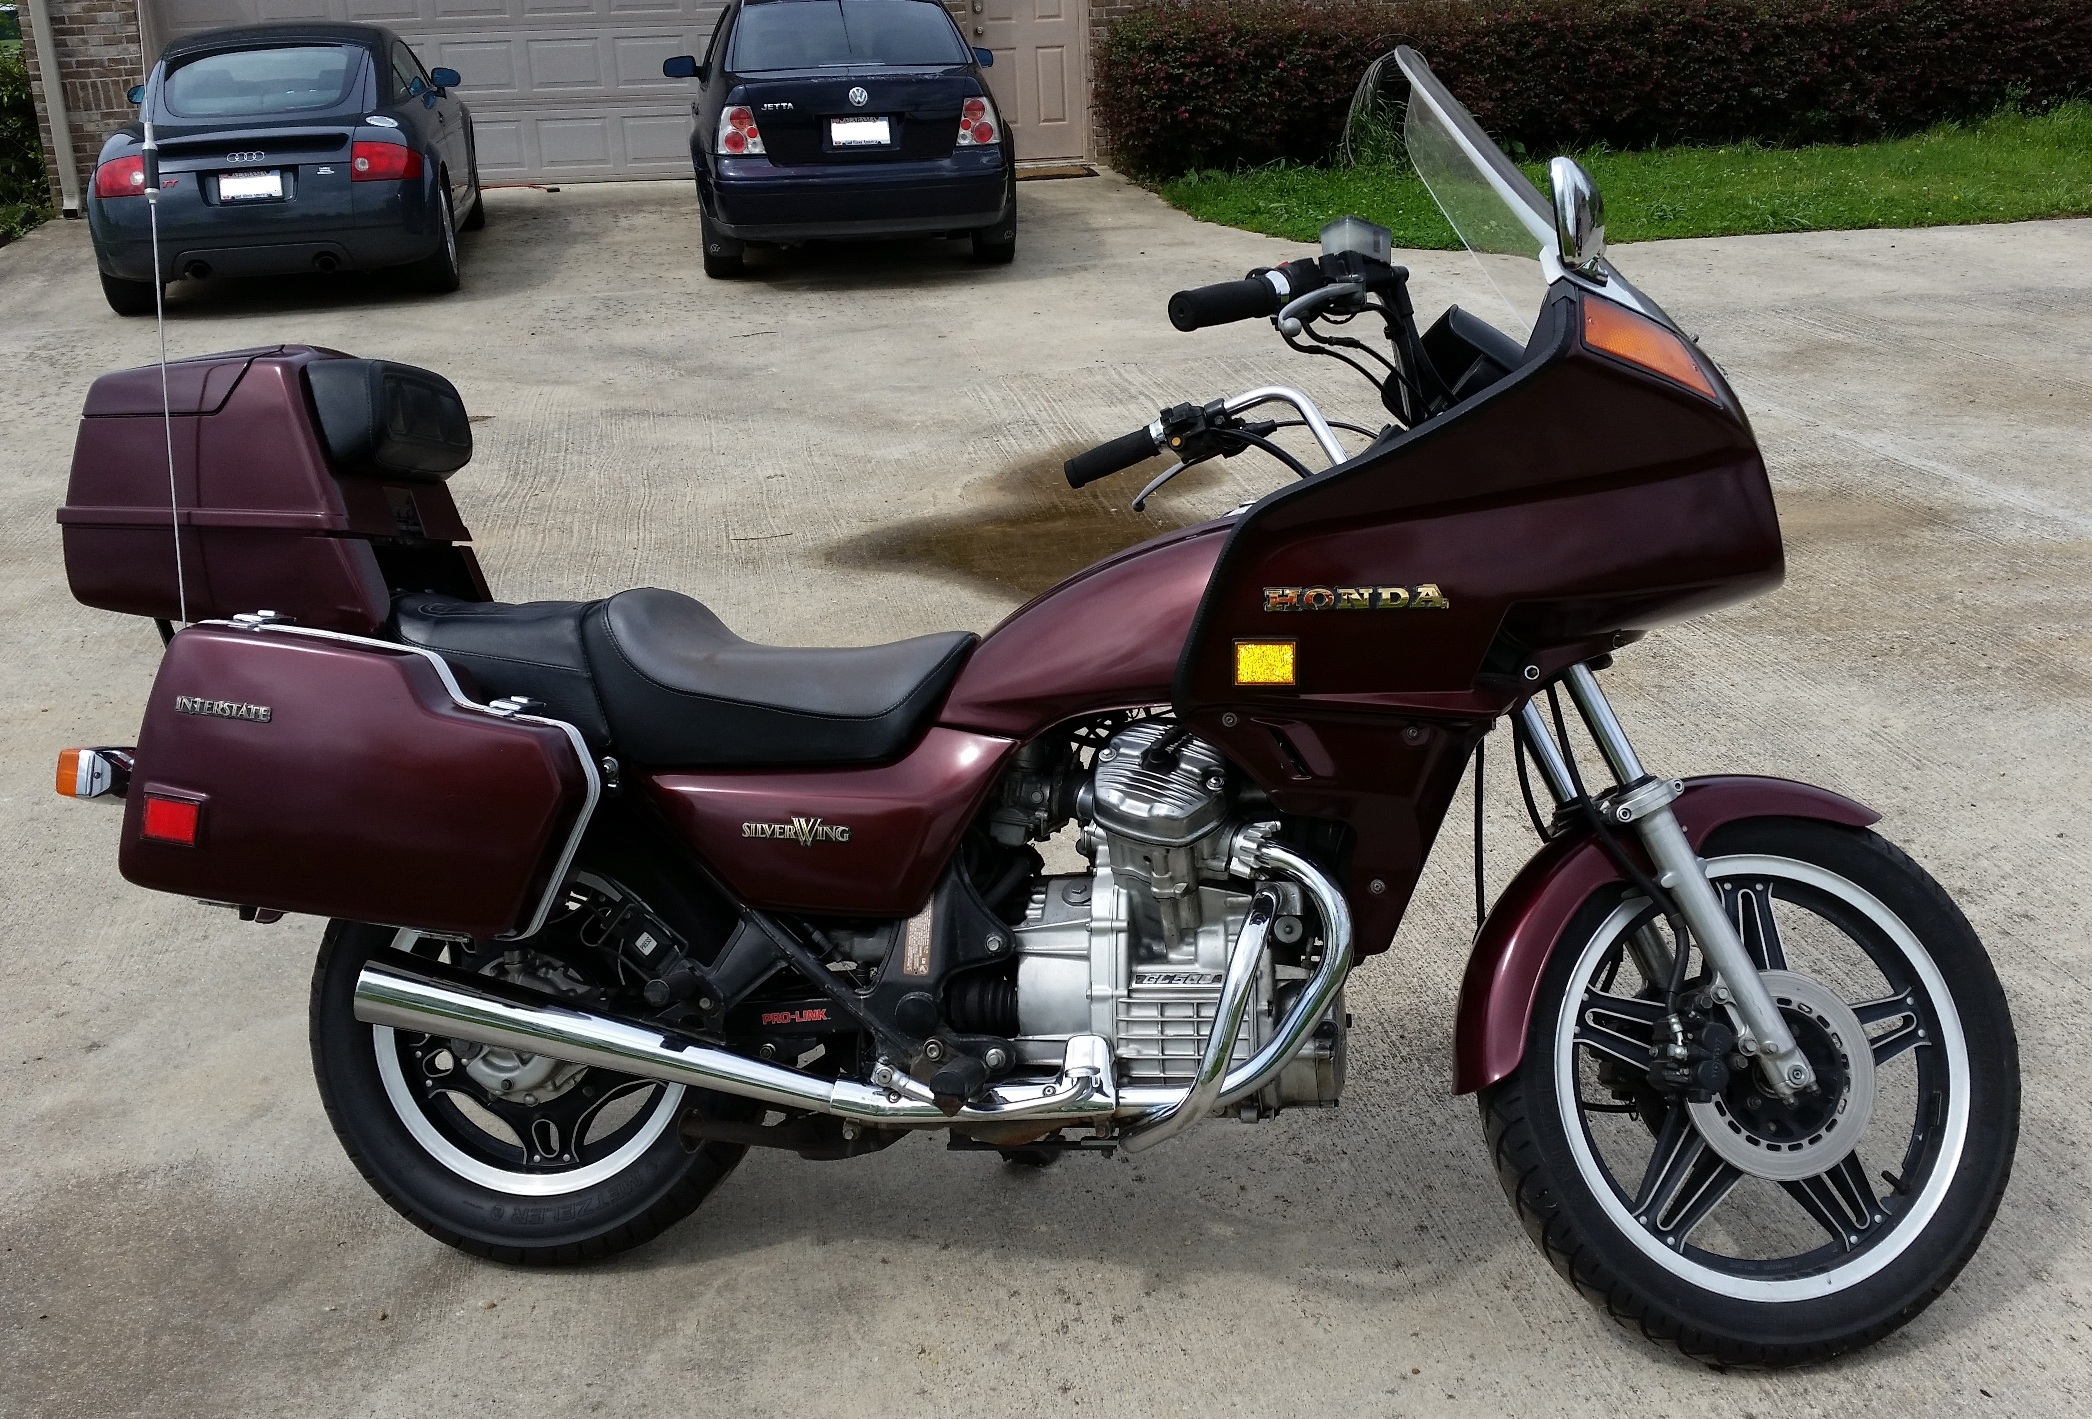 1982 Honda Gl500i Silverwing For Sale